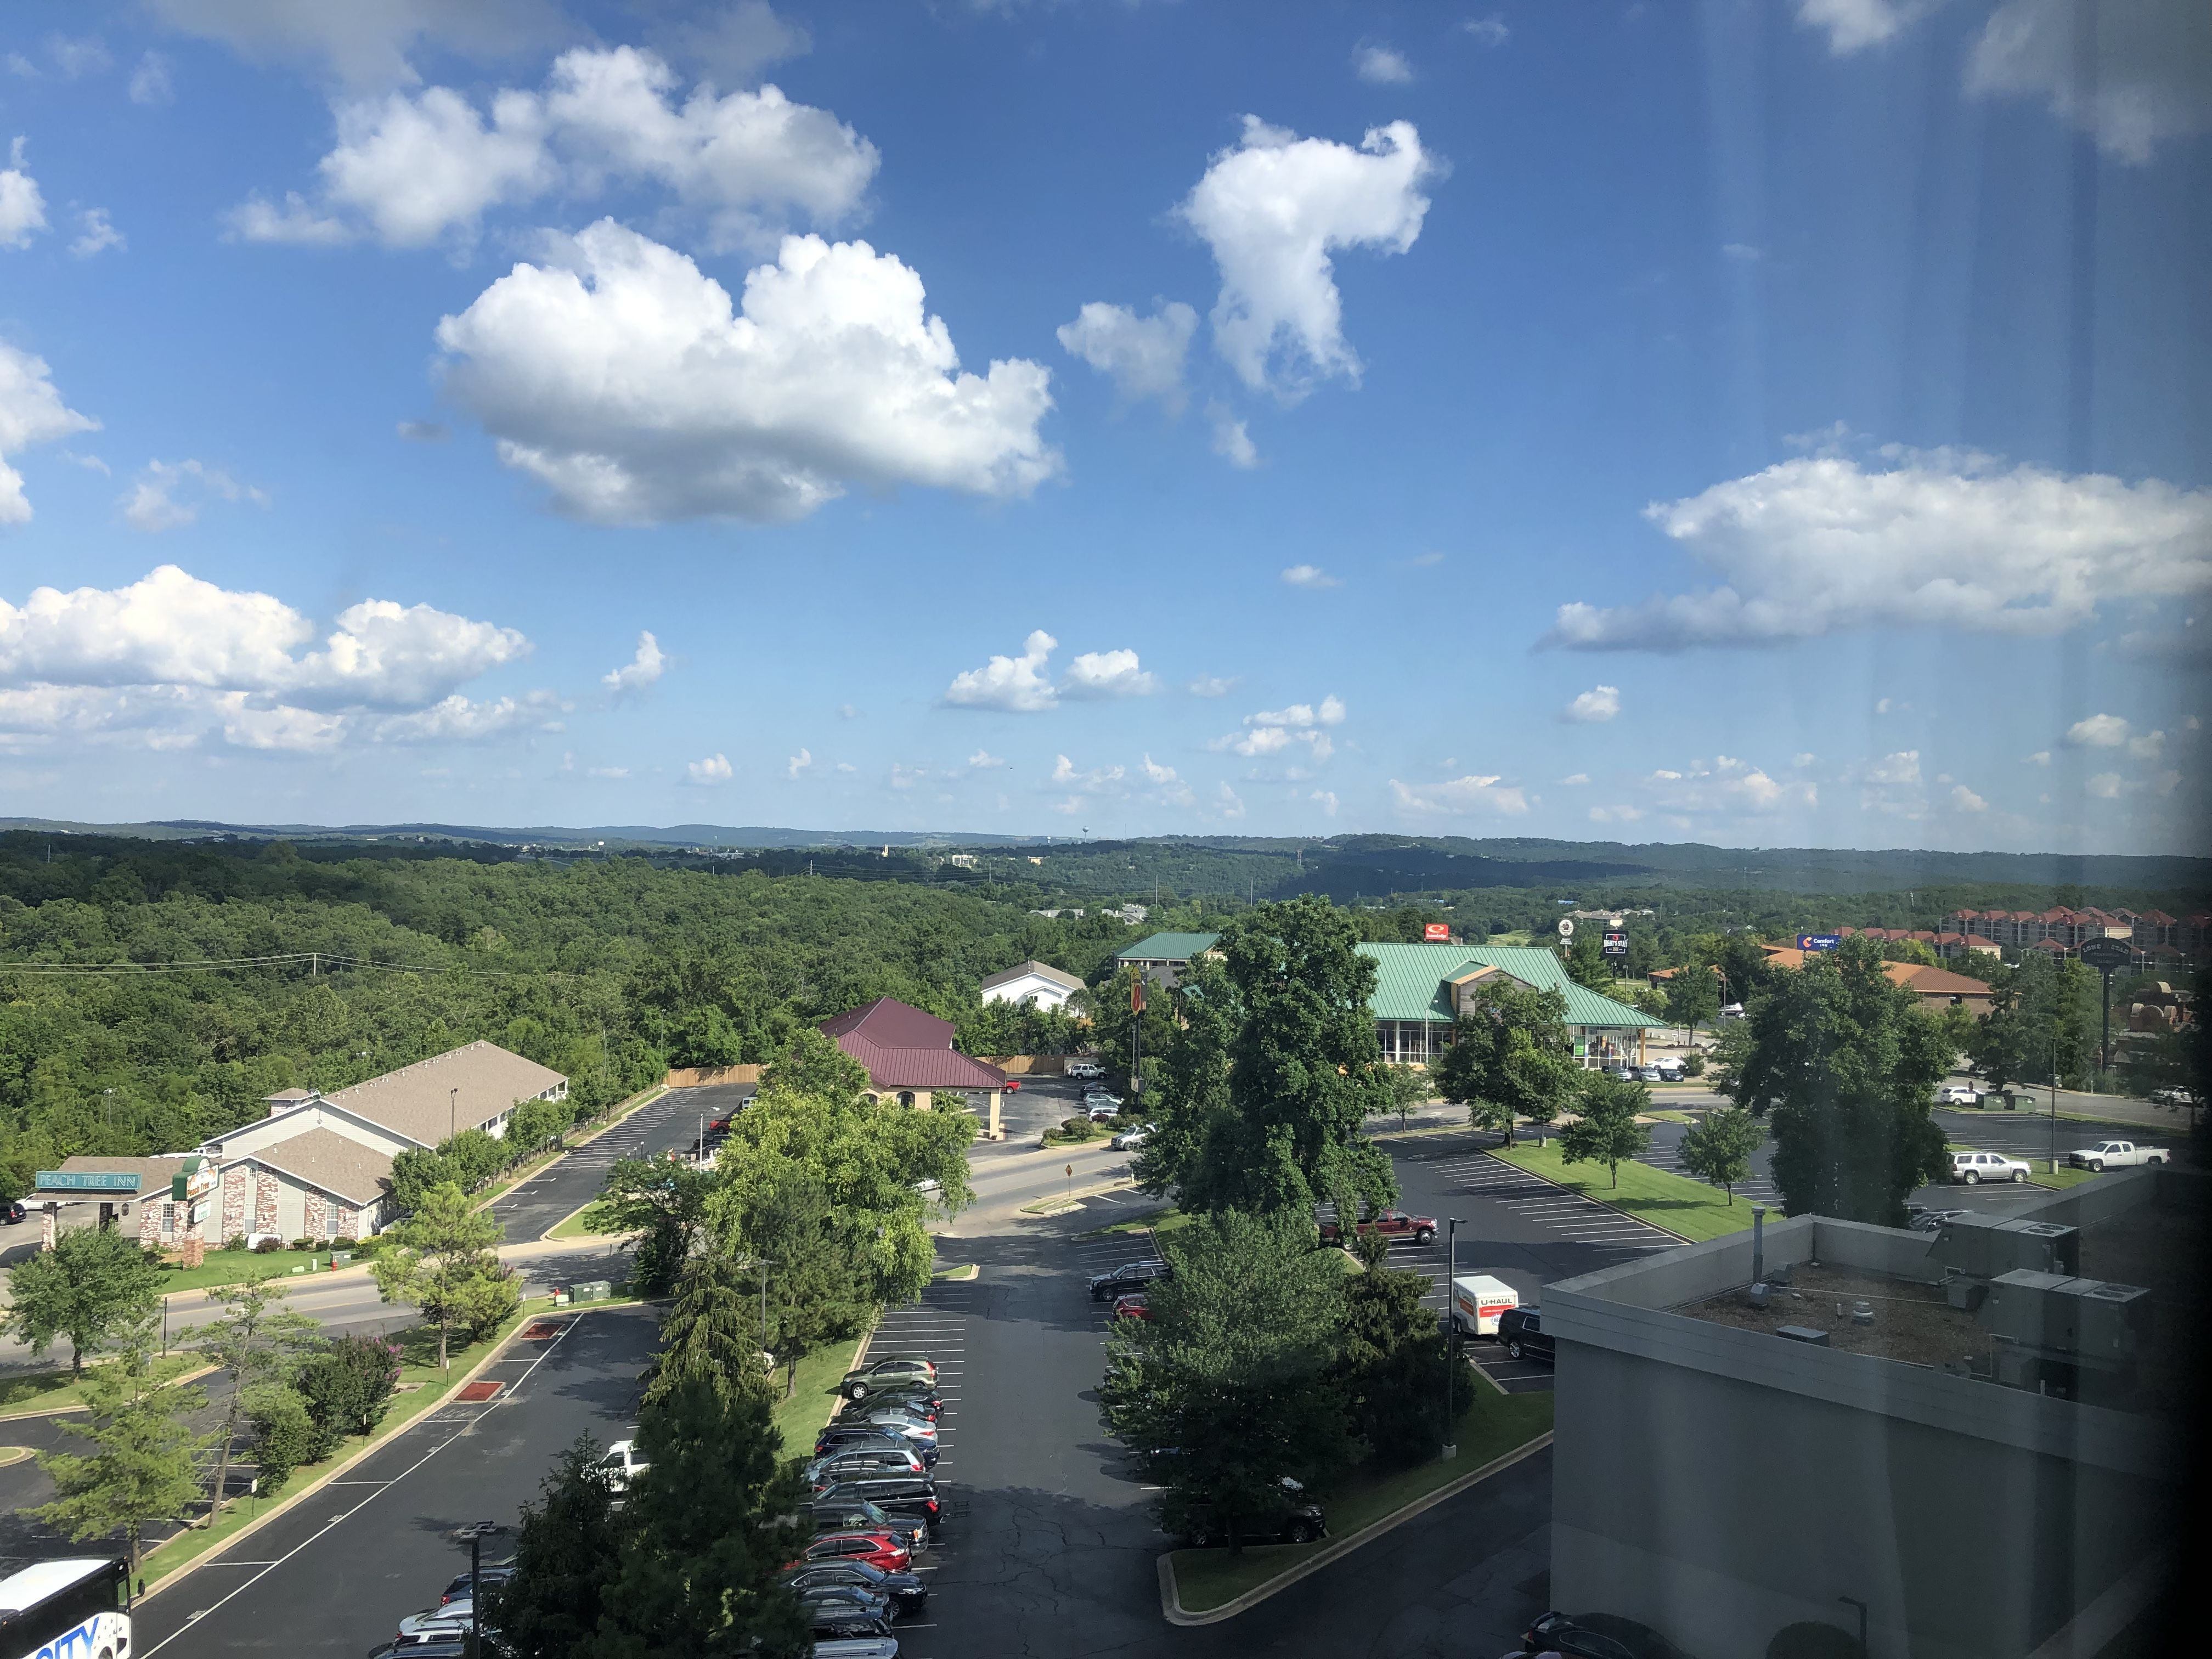 View from the Radisson Hotel Branson